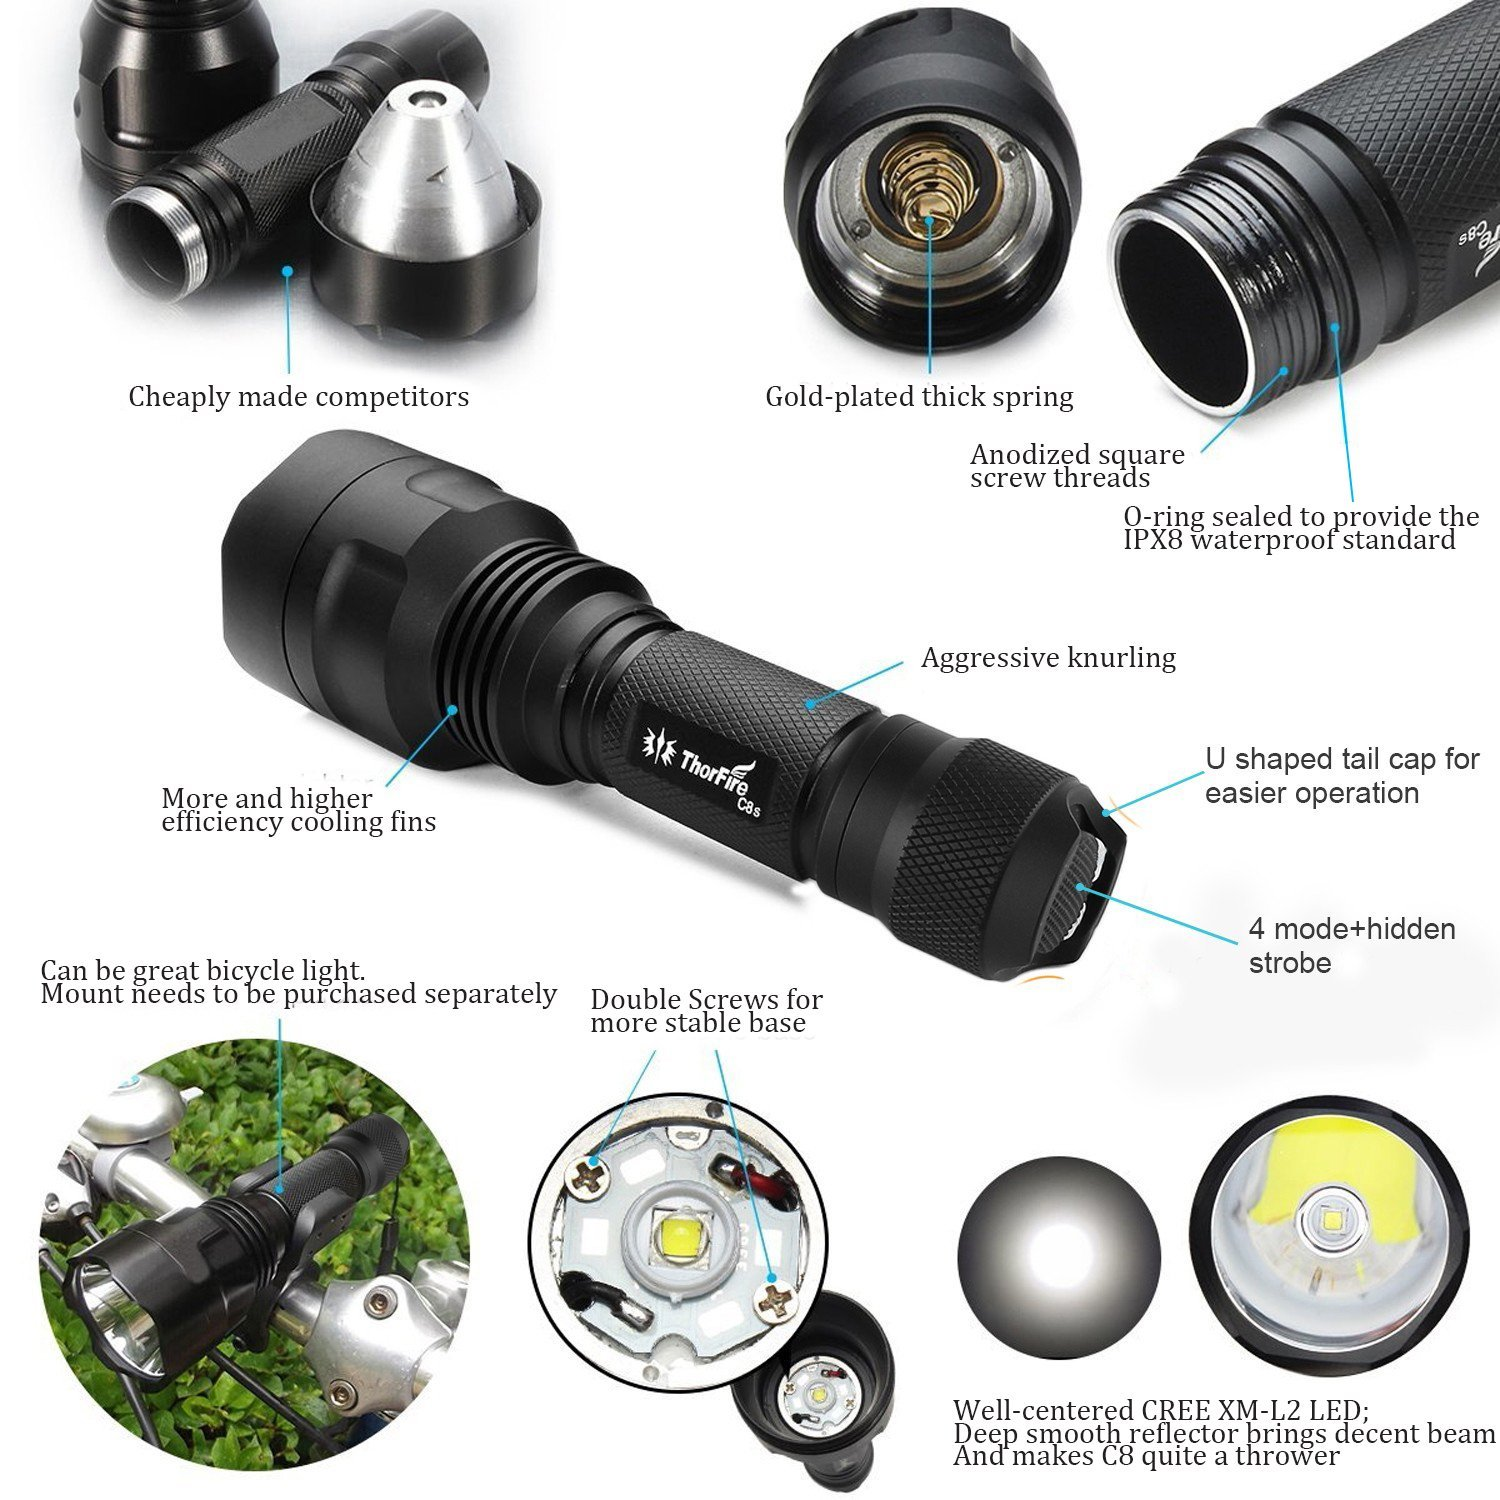 ThorFire Upgraded C8s Flashlight ,900 Lumens, CREE XM-L2, with 5 Modes